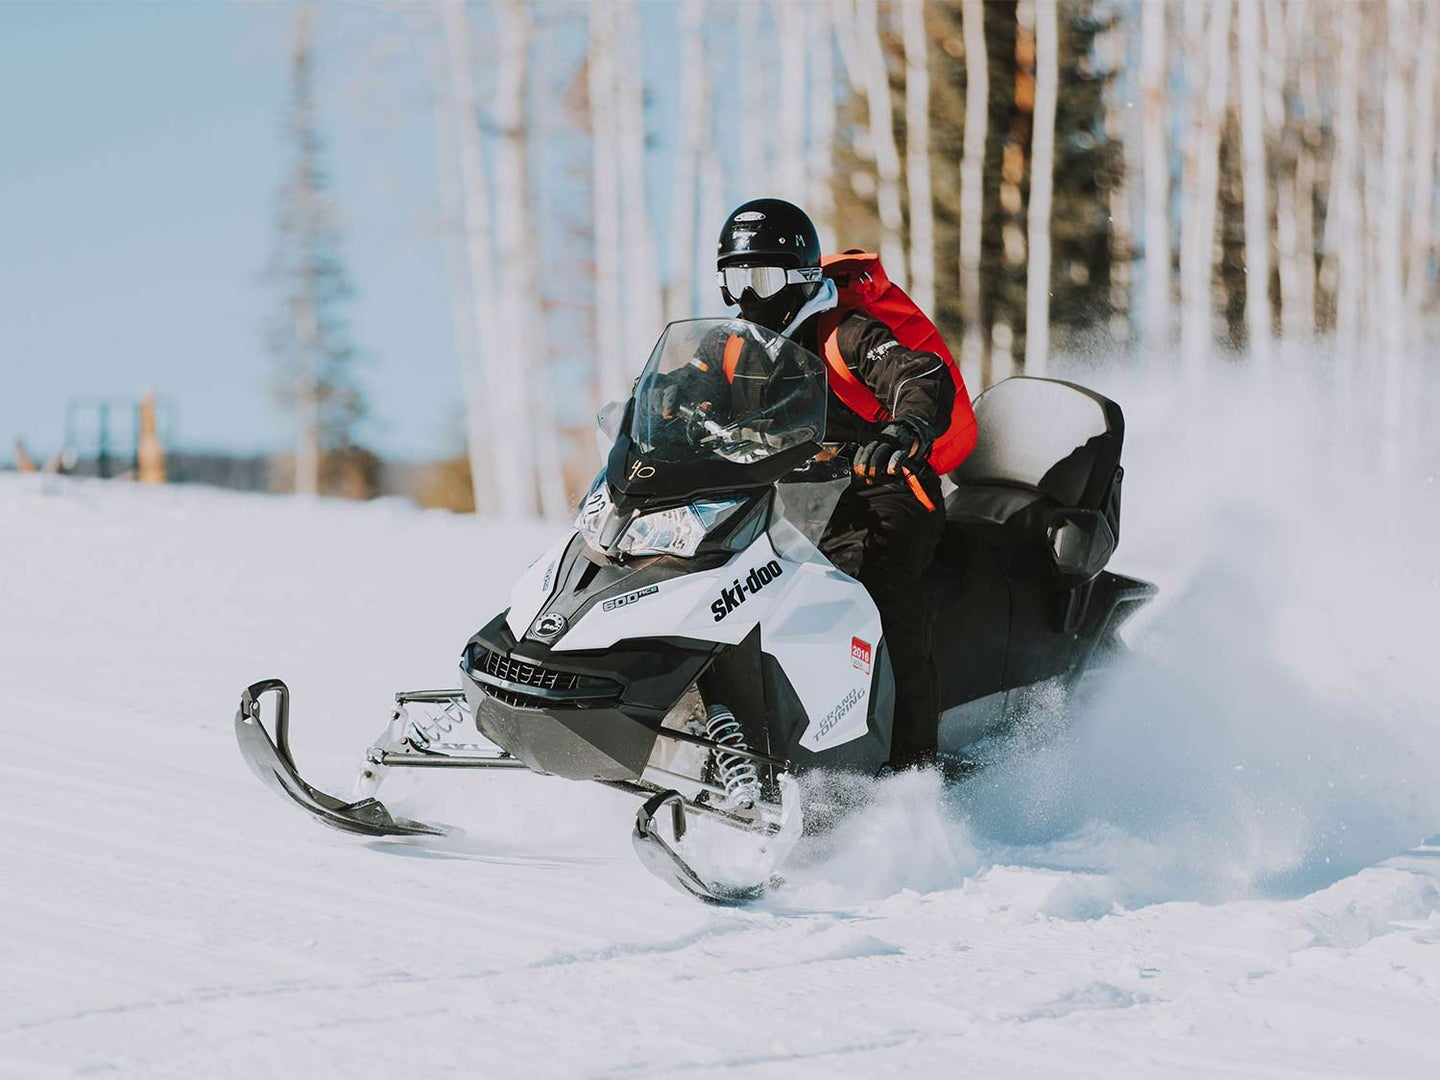 A person riding a snowmobile with the best snowmobile helmet.